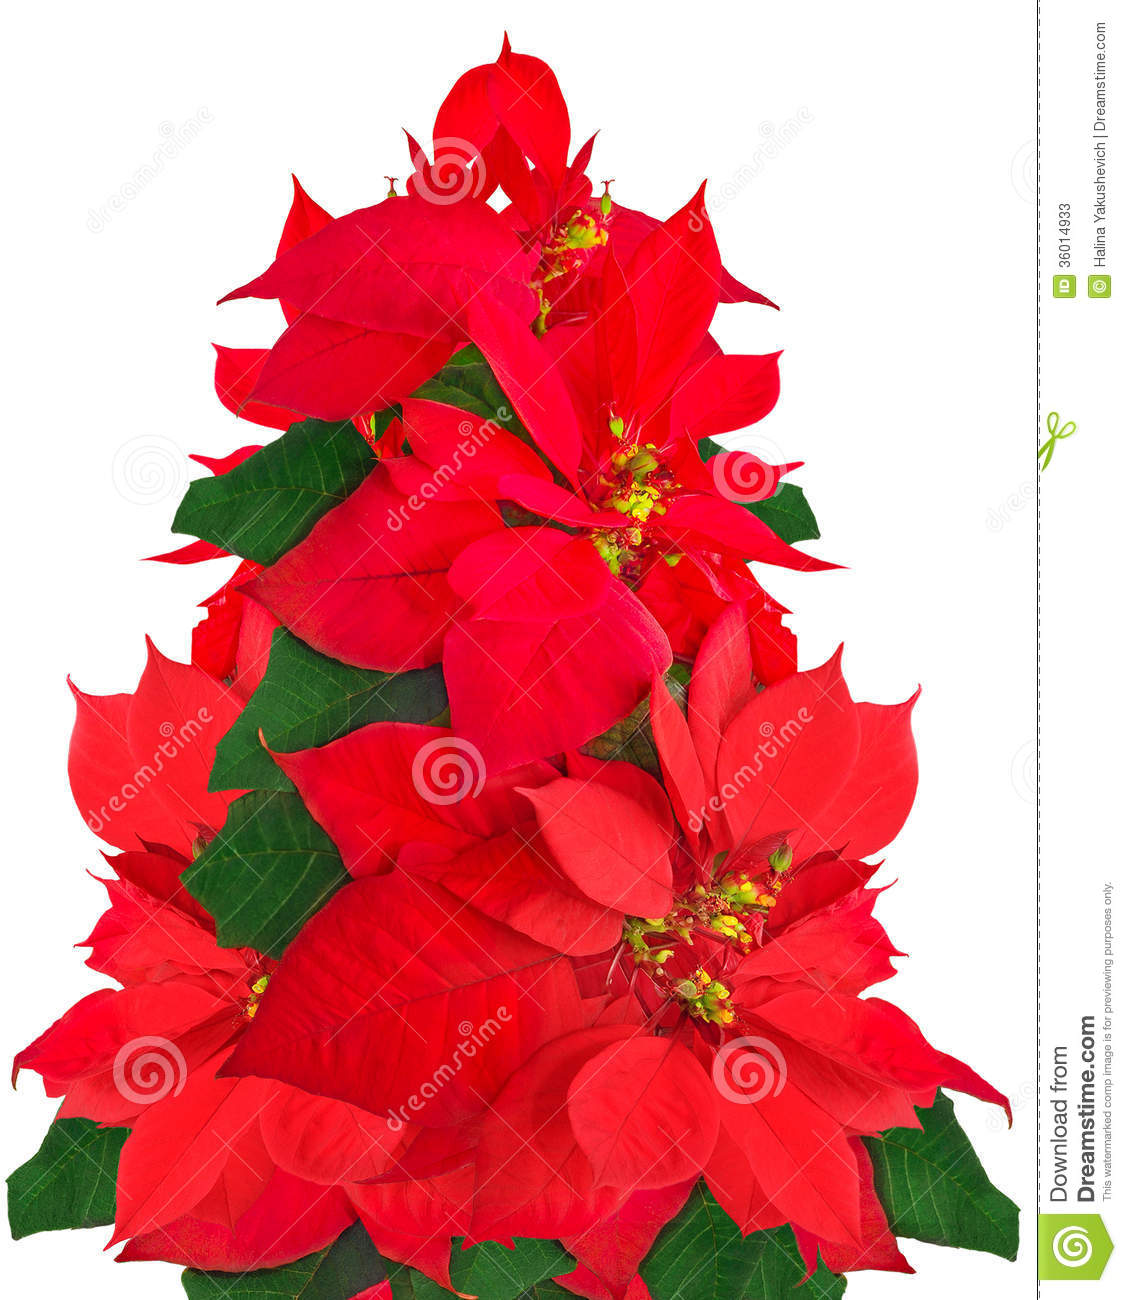 Christmas tree made of poinsettia flowers stock image